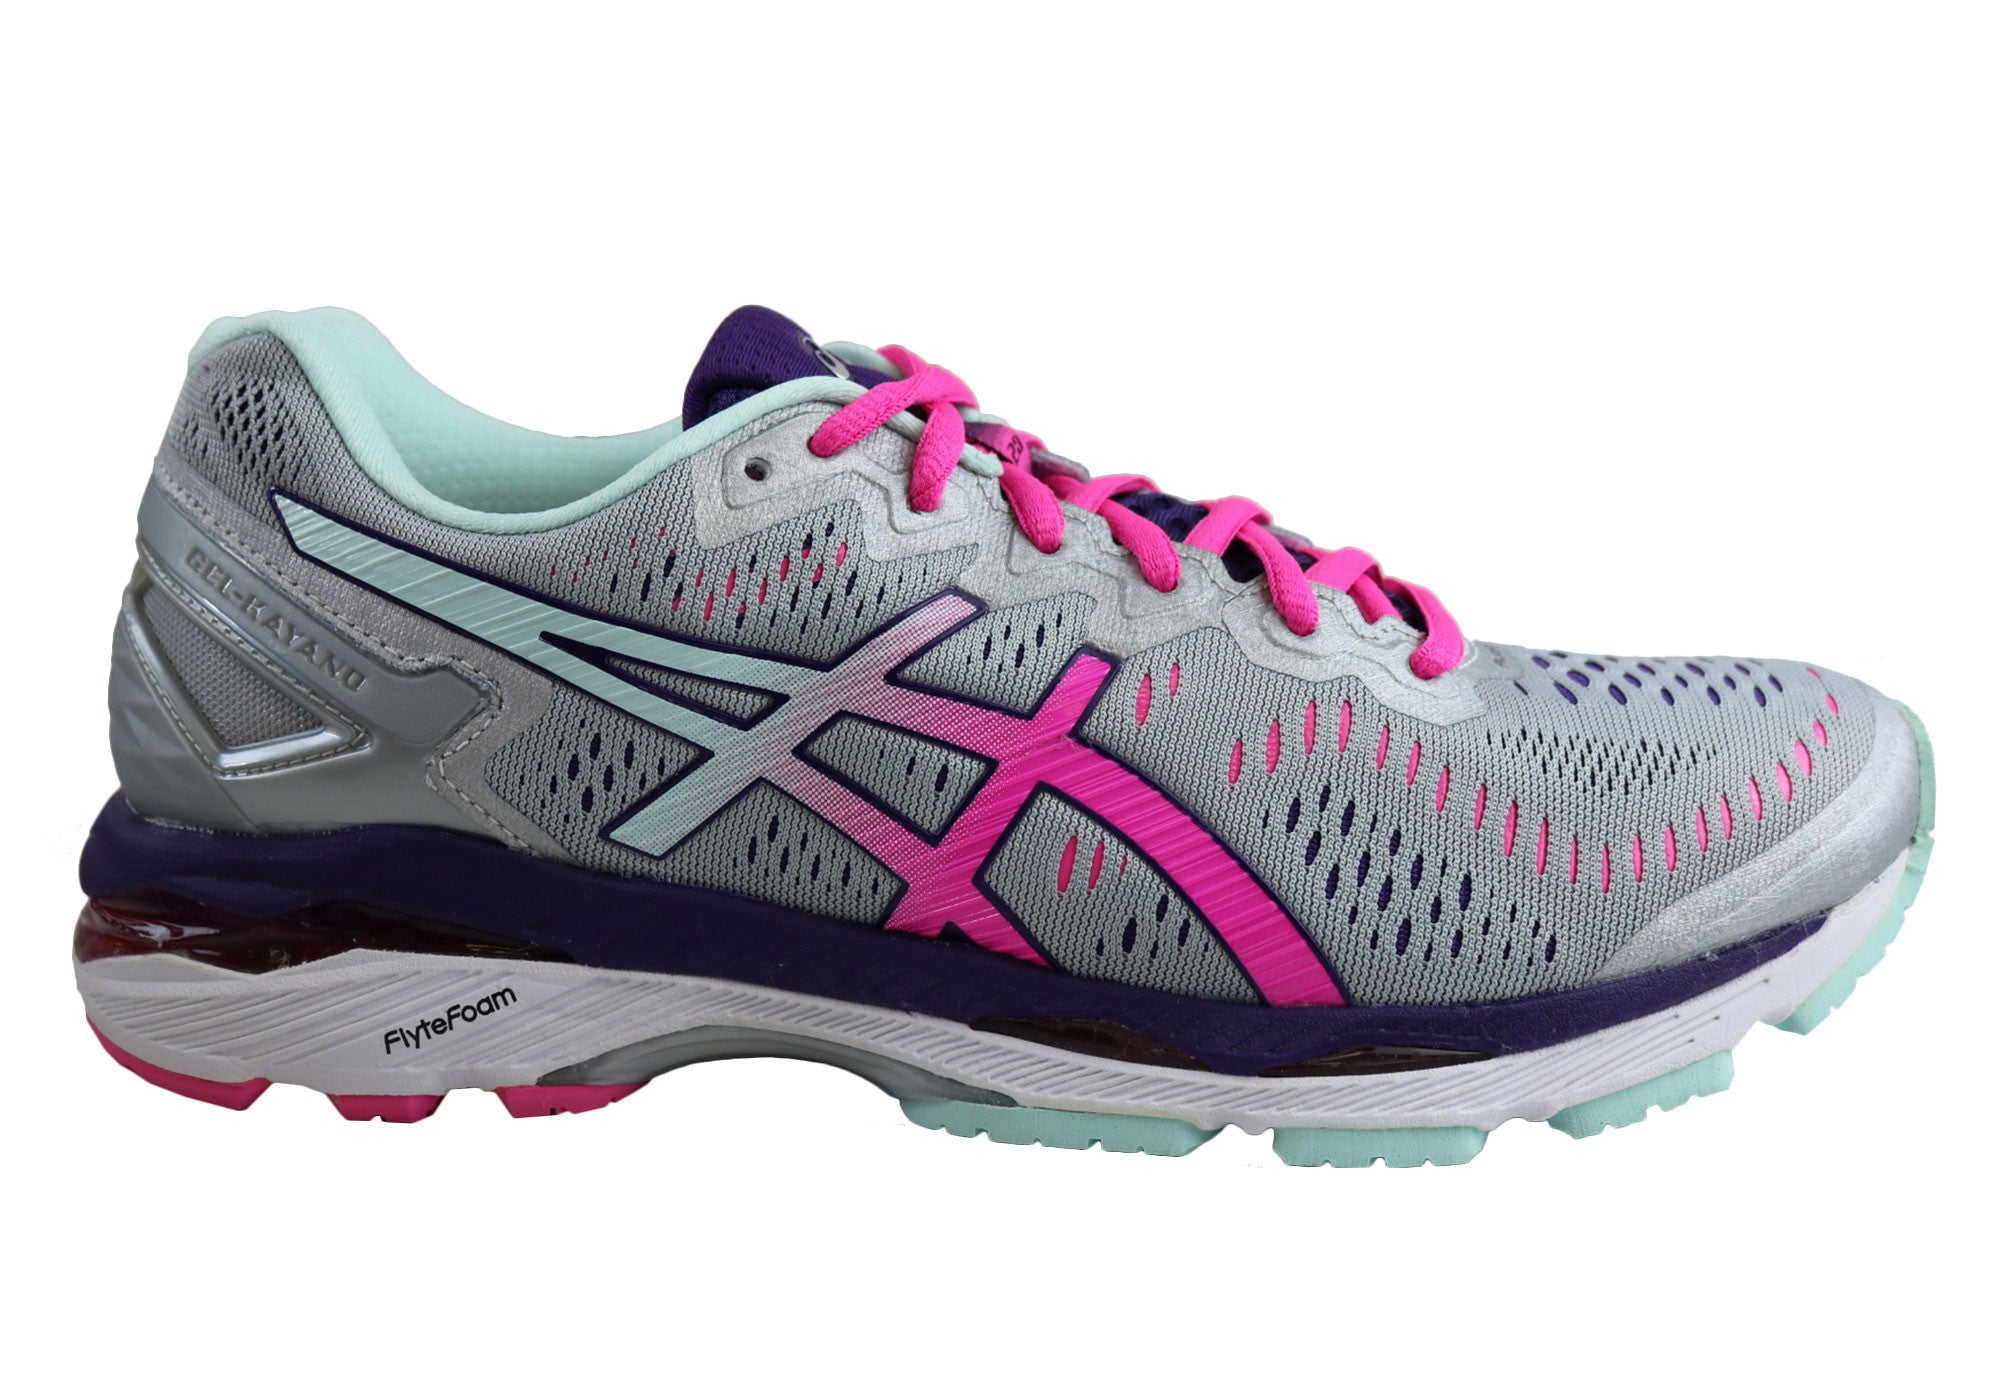 9373cccb703f Home Asics Gel Kayano 23 Wide D Width Womens Premium Cushioned Running  Shoes. Silver Pink Glow Parachute Purple ...